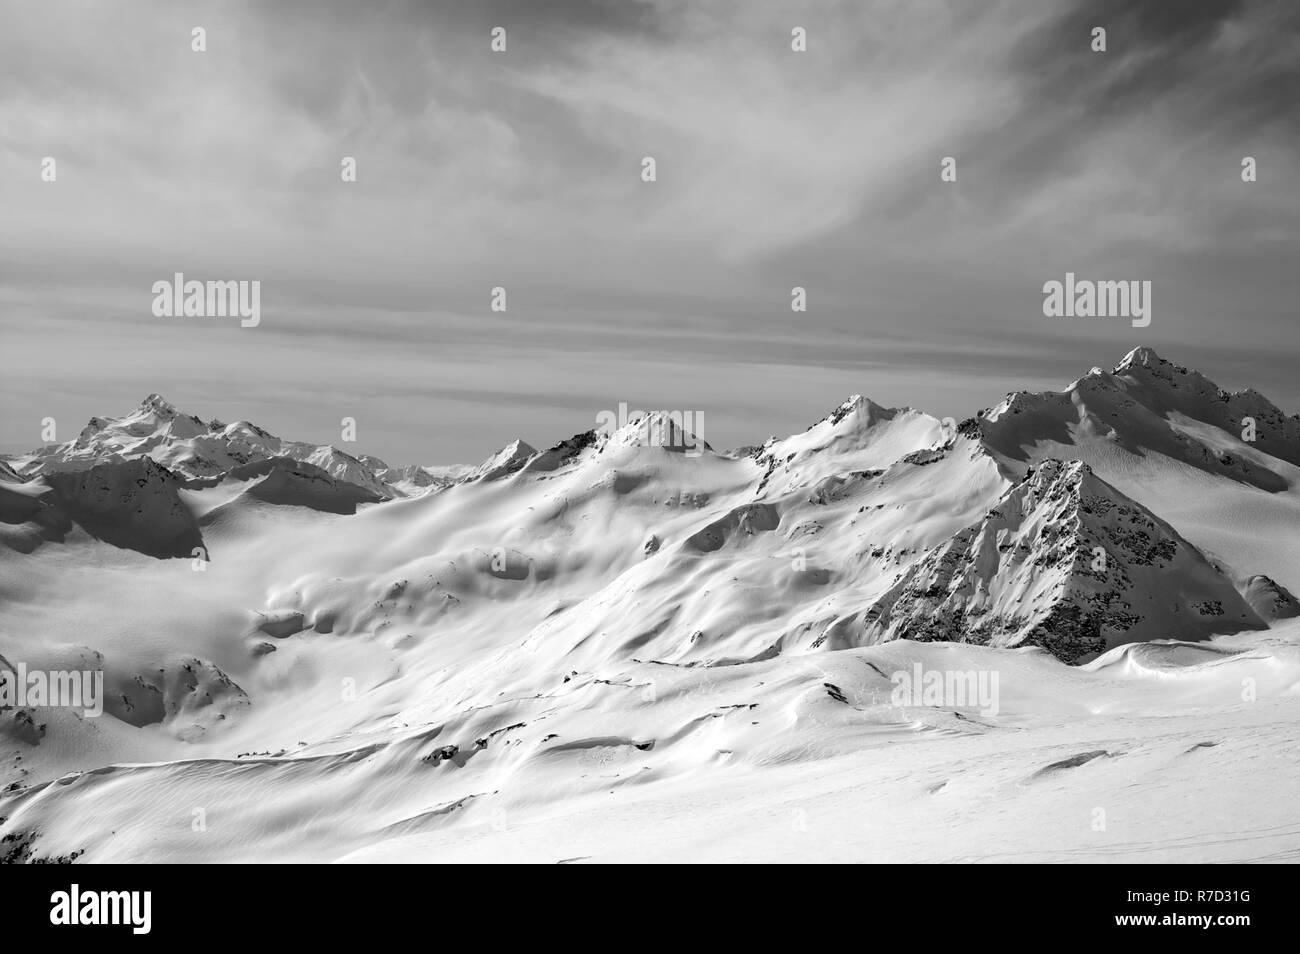 Black and white view on snowy mountain peaks and off-piste slope at sun evening. Caucasus Mountains in winter, Elbrus region. - Stock Image